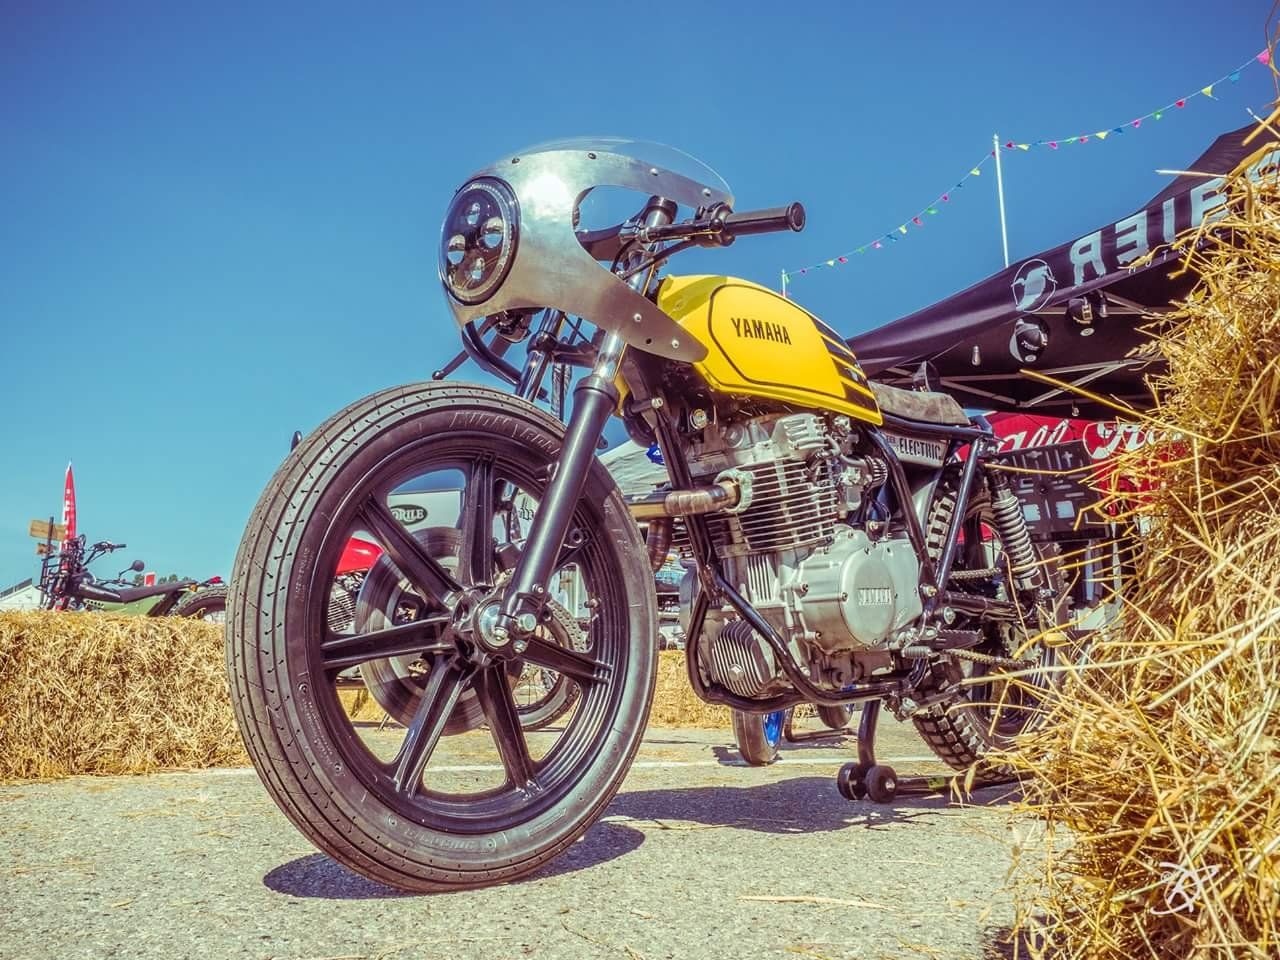 ... a small garage focused on customizing and restoring a wide range of  makes and models. When a customer wished for something special from his  XS400, ...